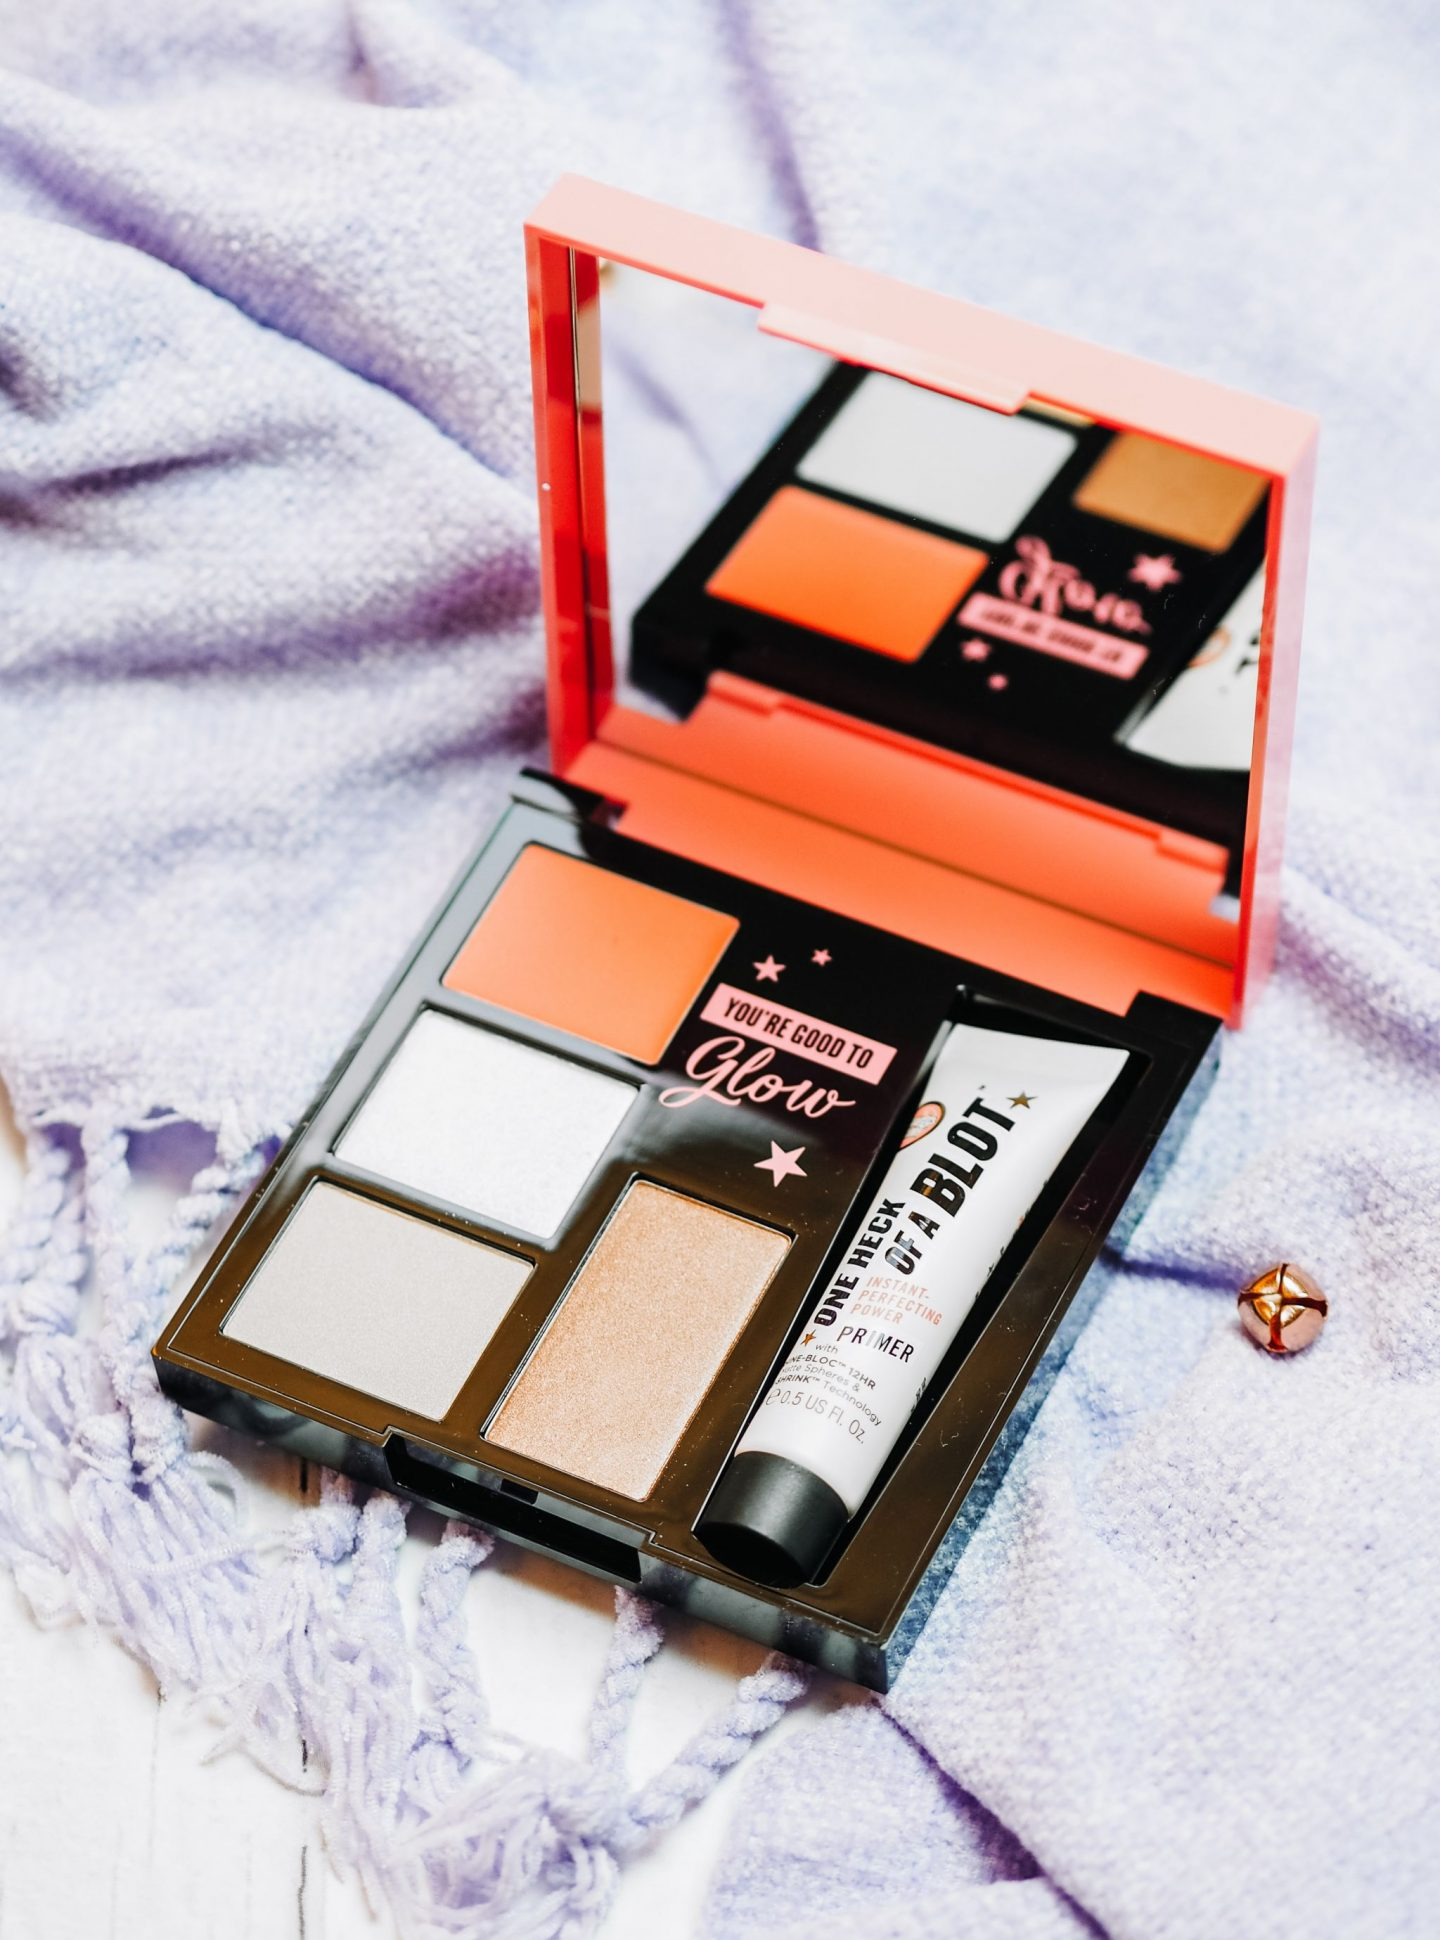 Four Fun, Affordable & Totally Gift-Worthy Makeup Palettes You Need To Know About